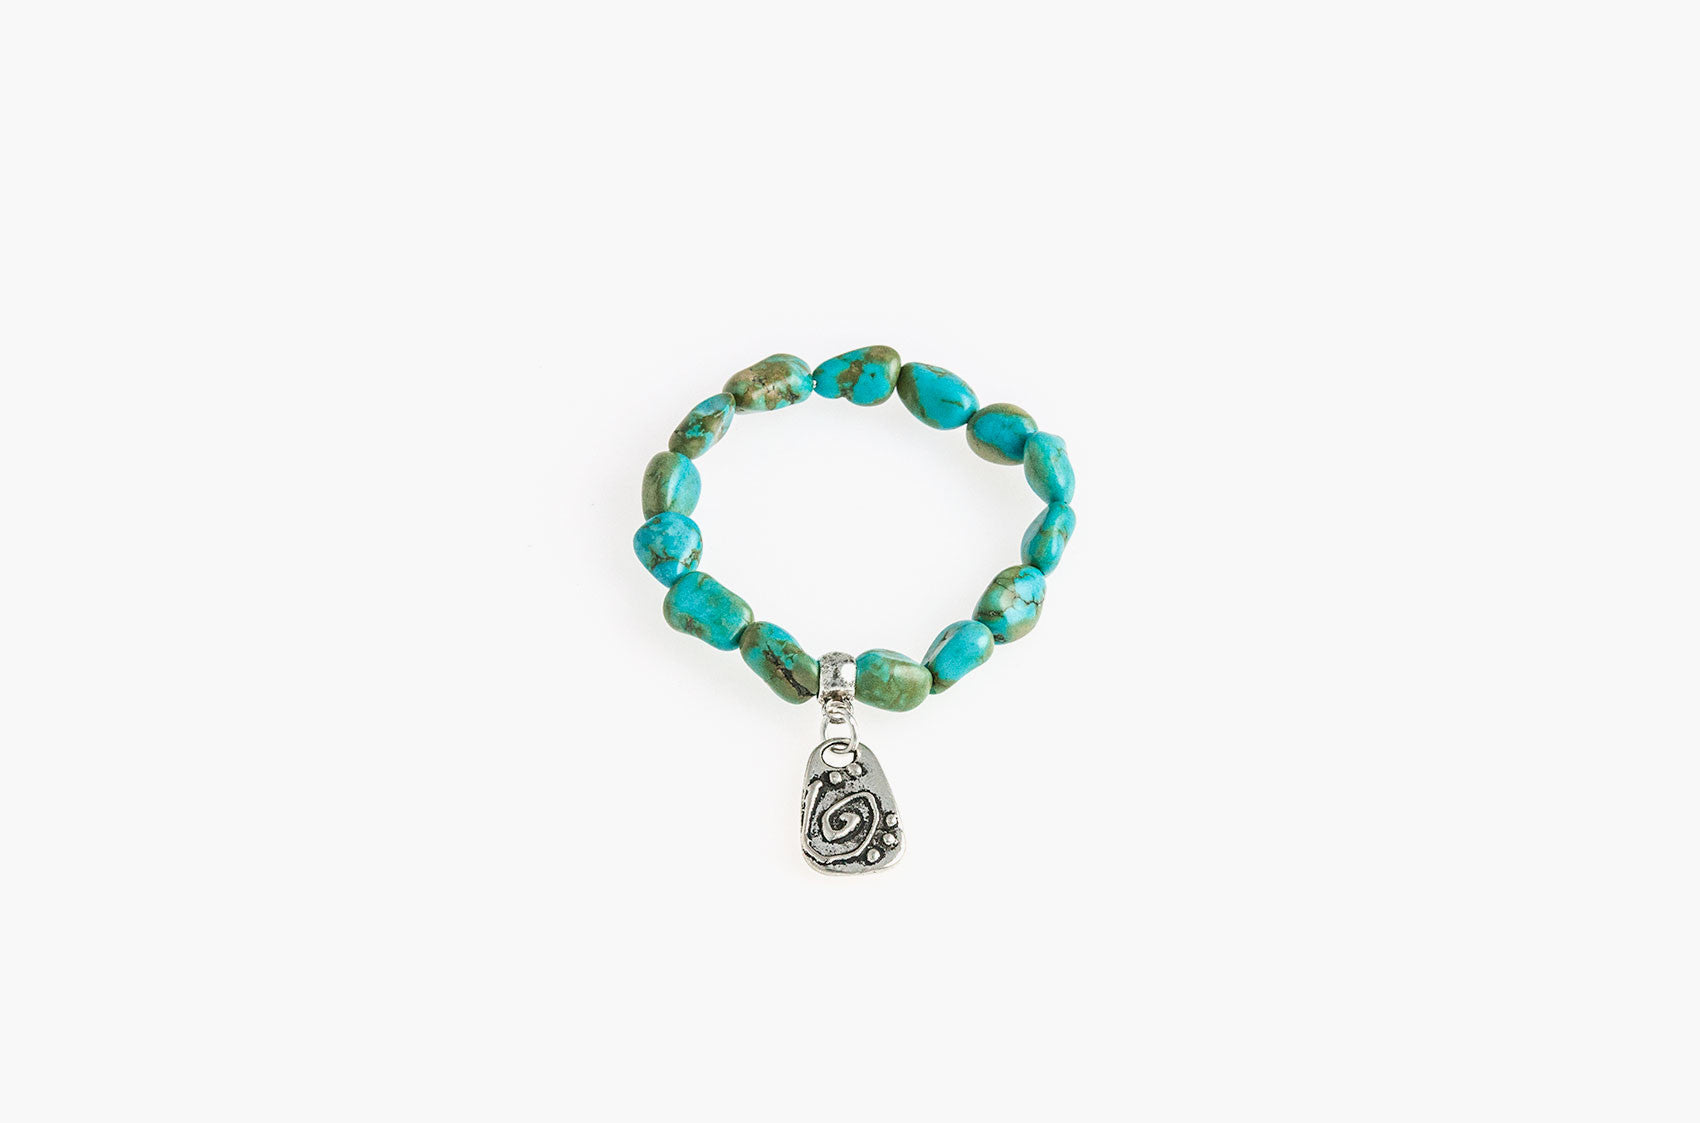 Turquoise nuggets and tribal charm bracelet